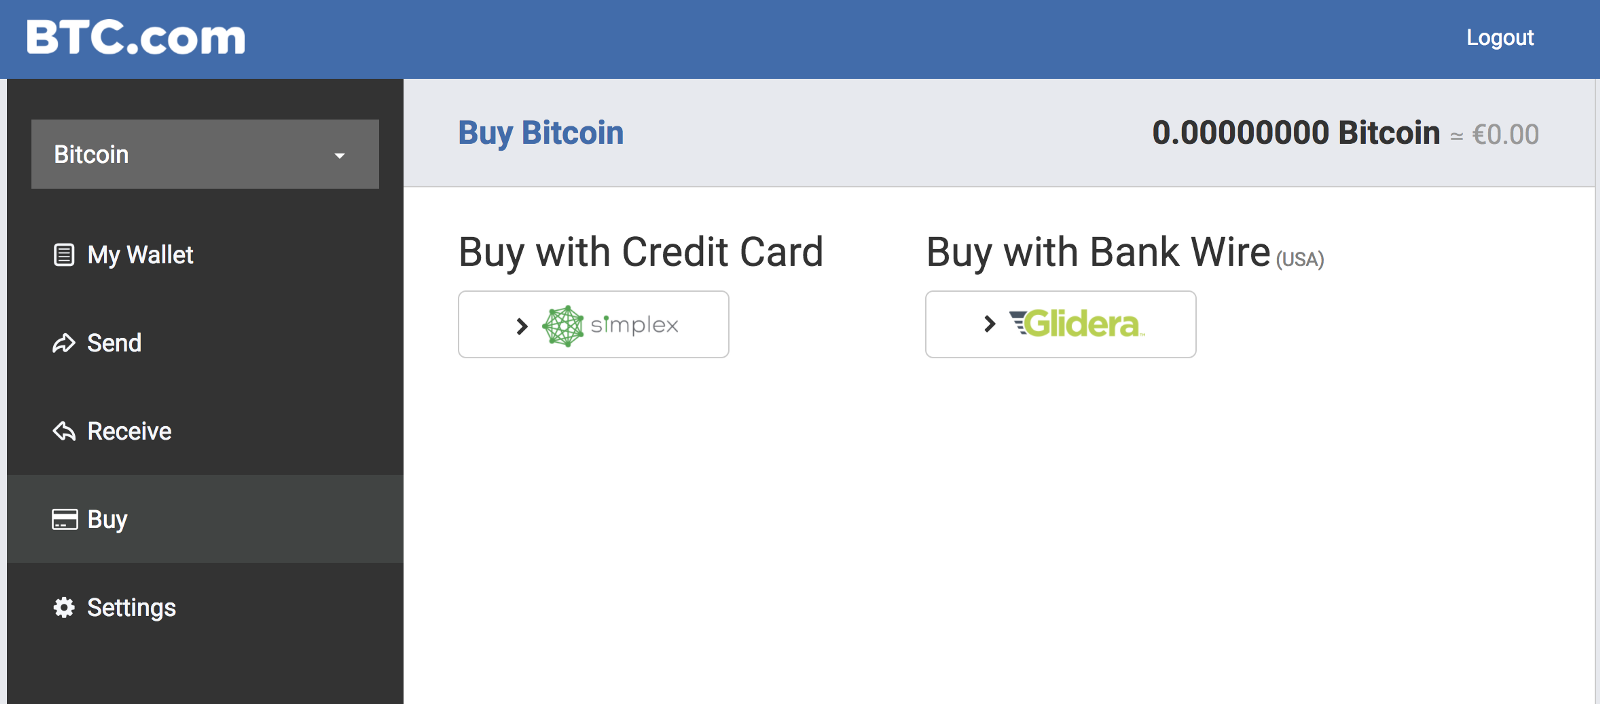 Where can i buy bitcoin with my credit card